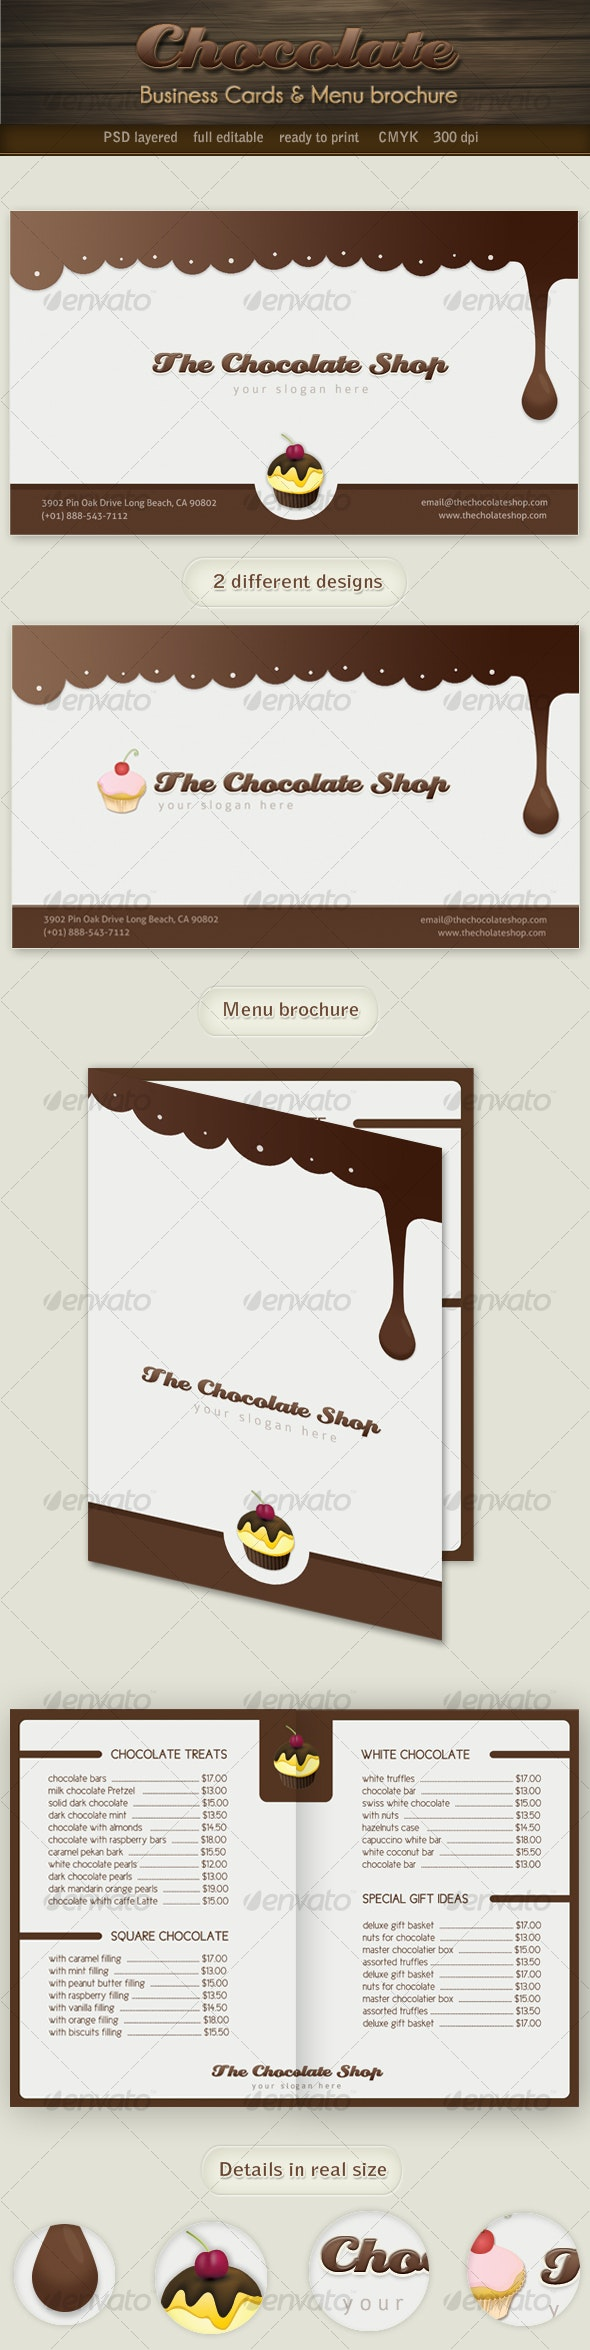 Chocolate business cards and menu brochure